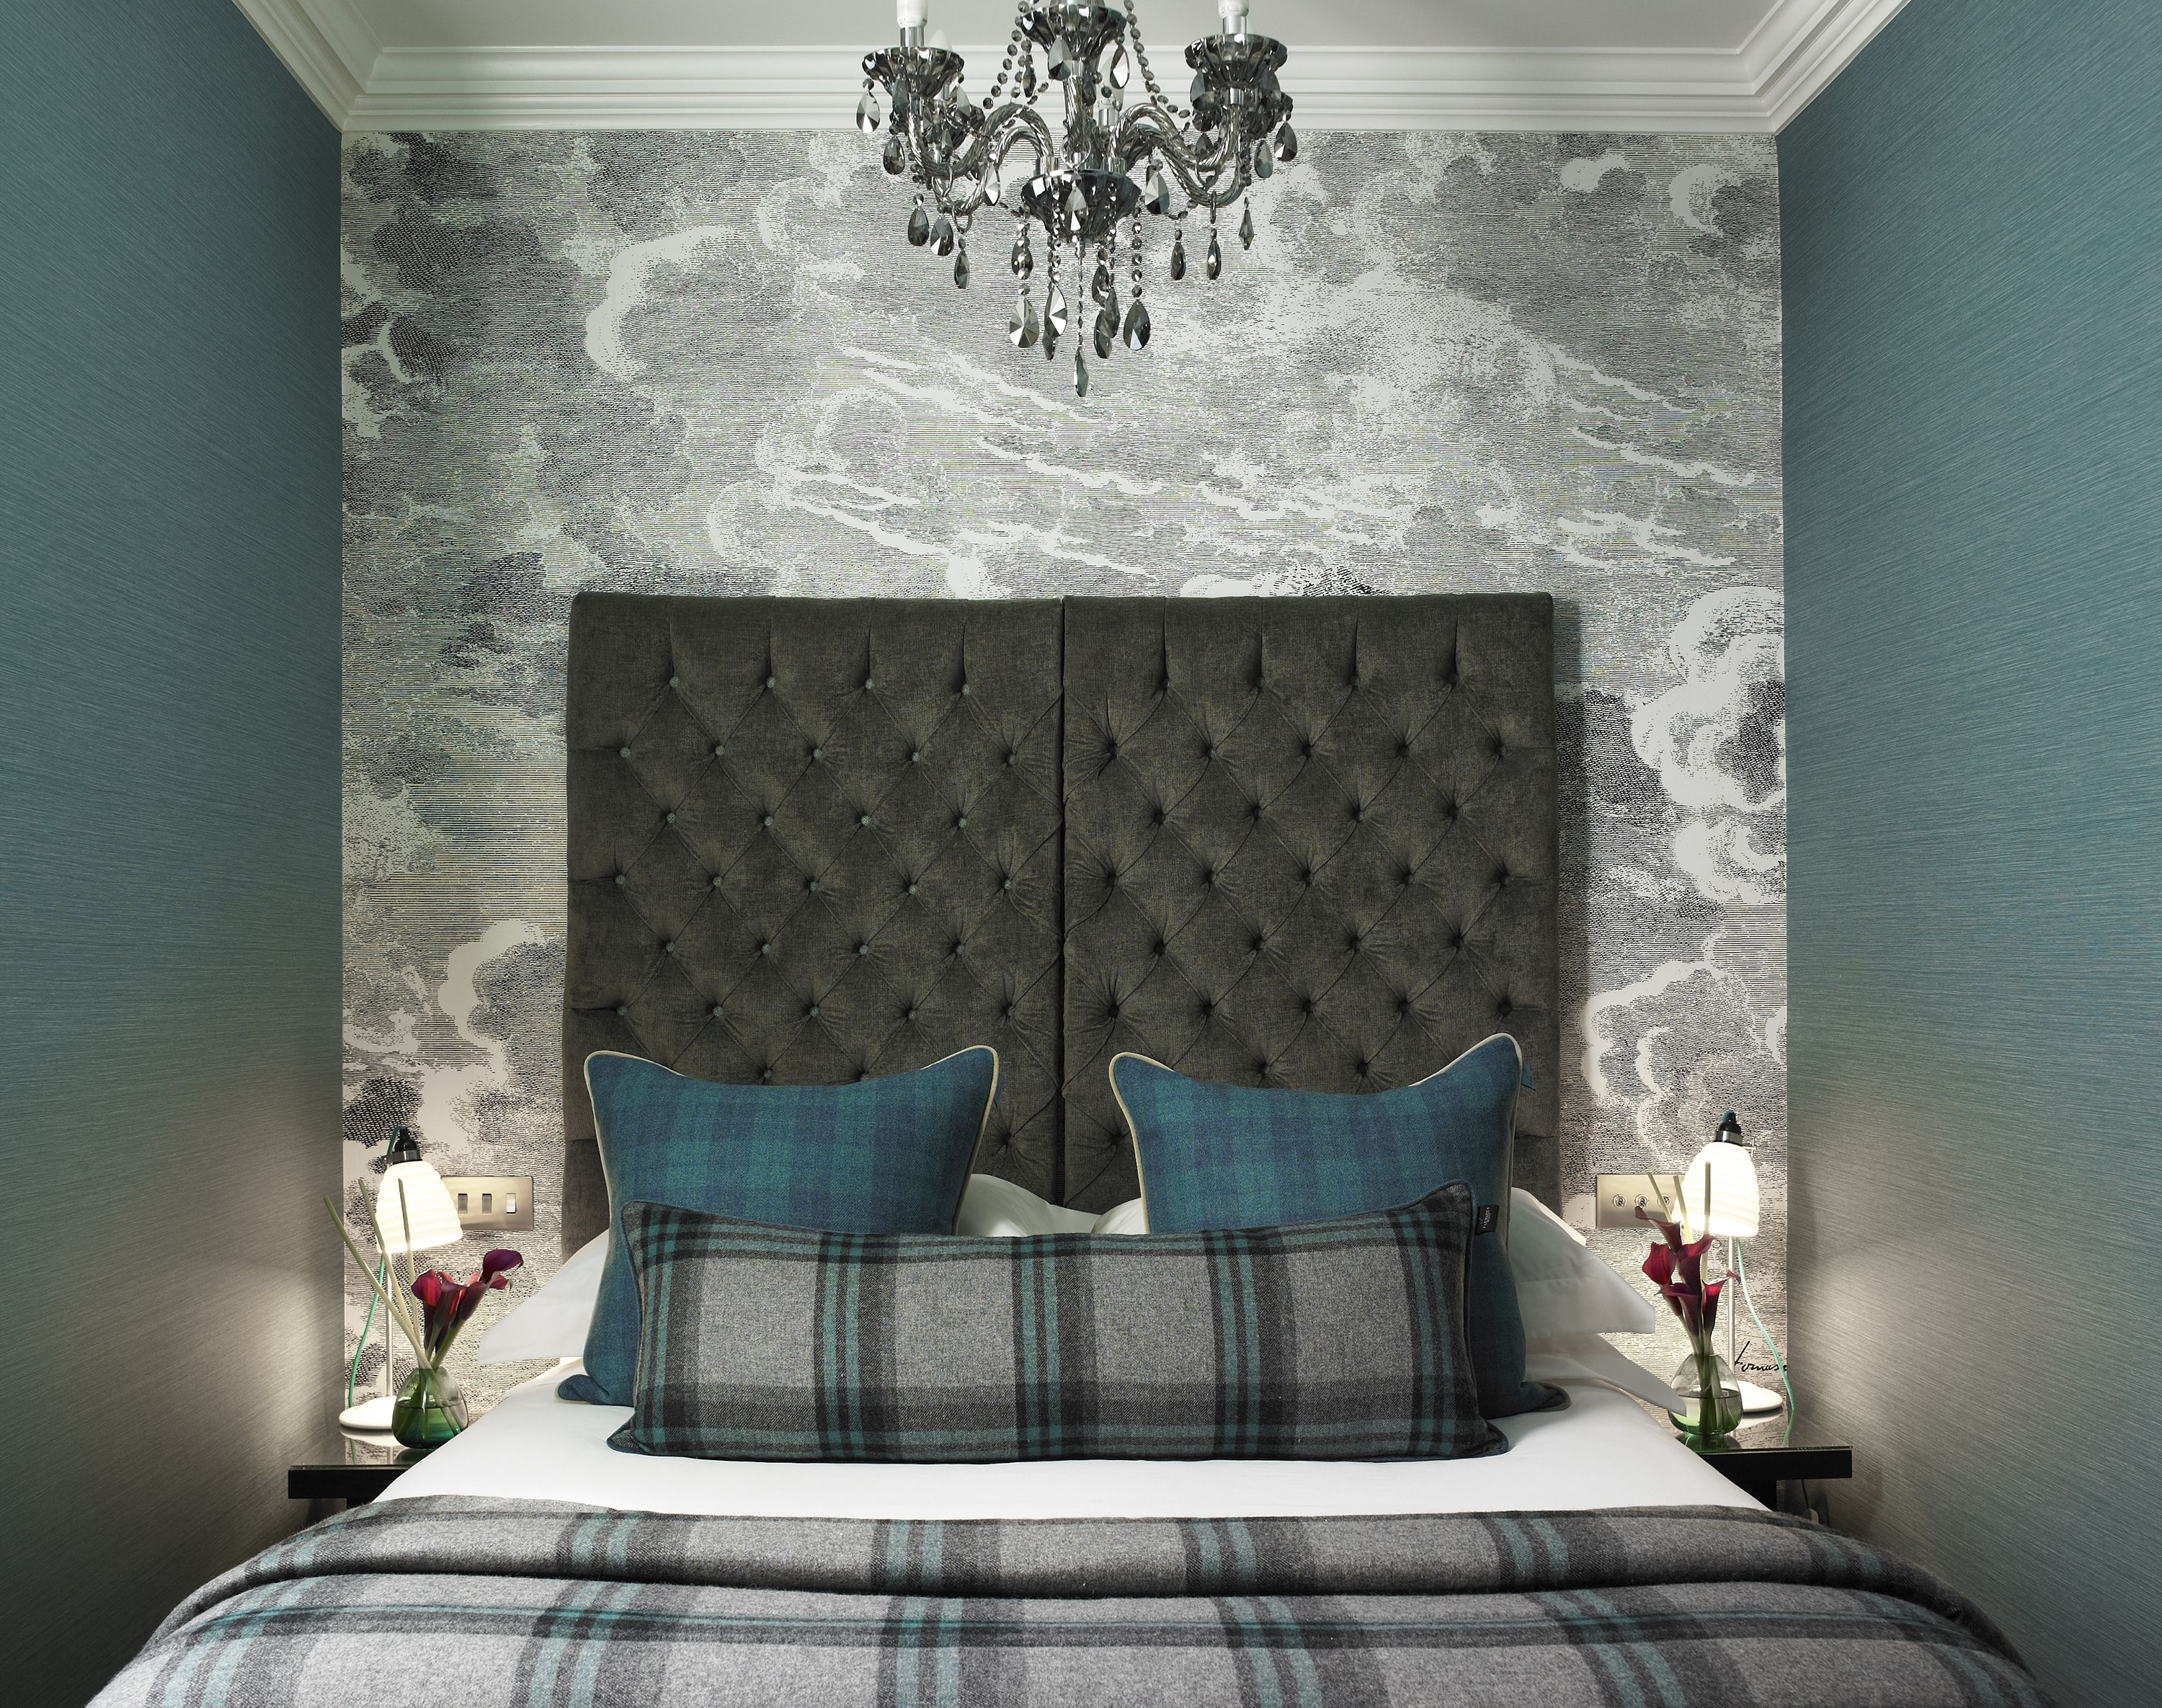 Textured wall covering fabric headboard and hanging lights at the